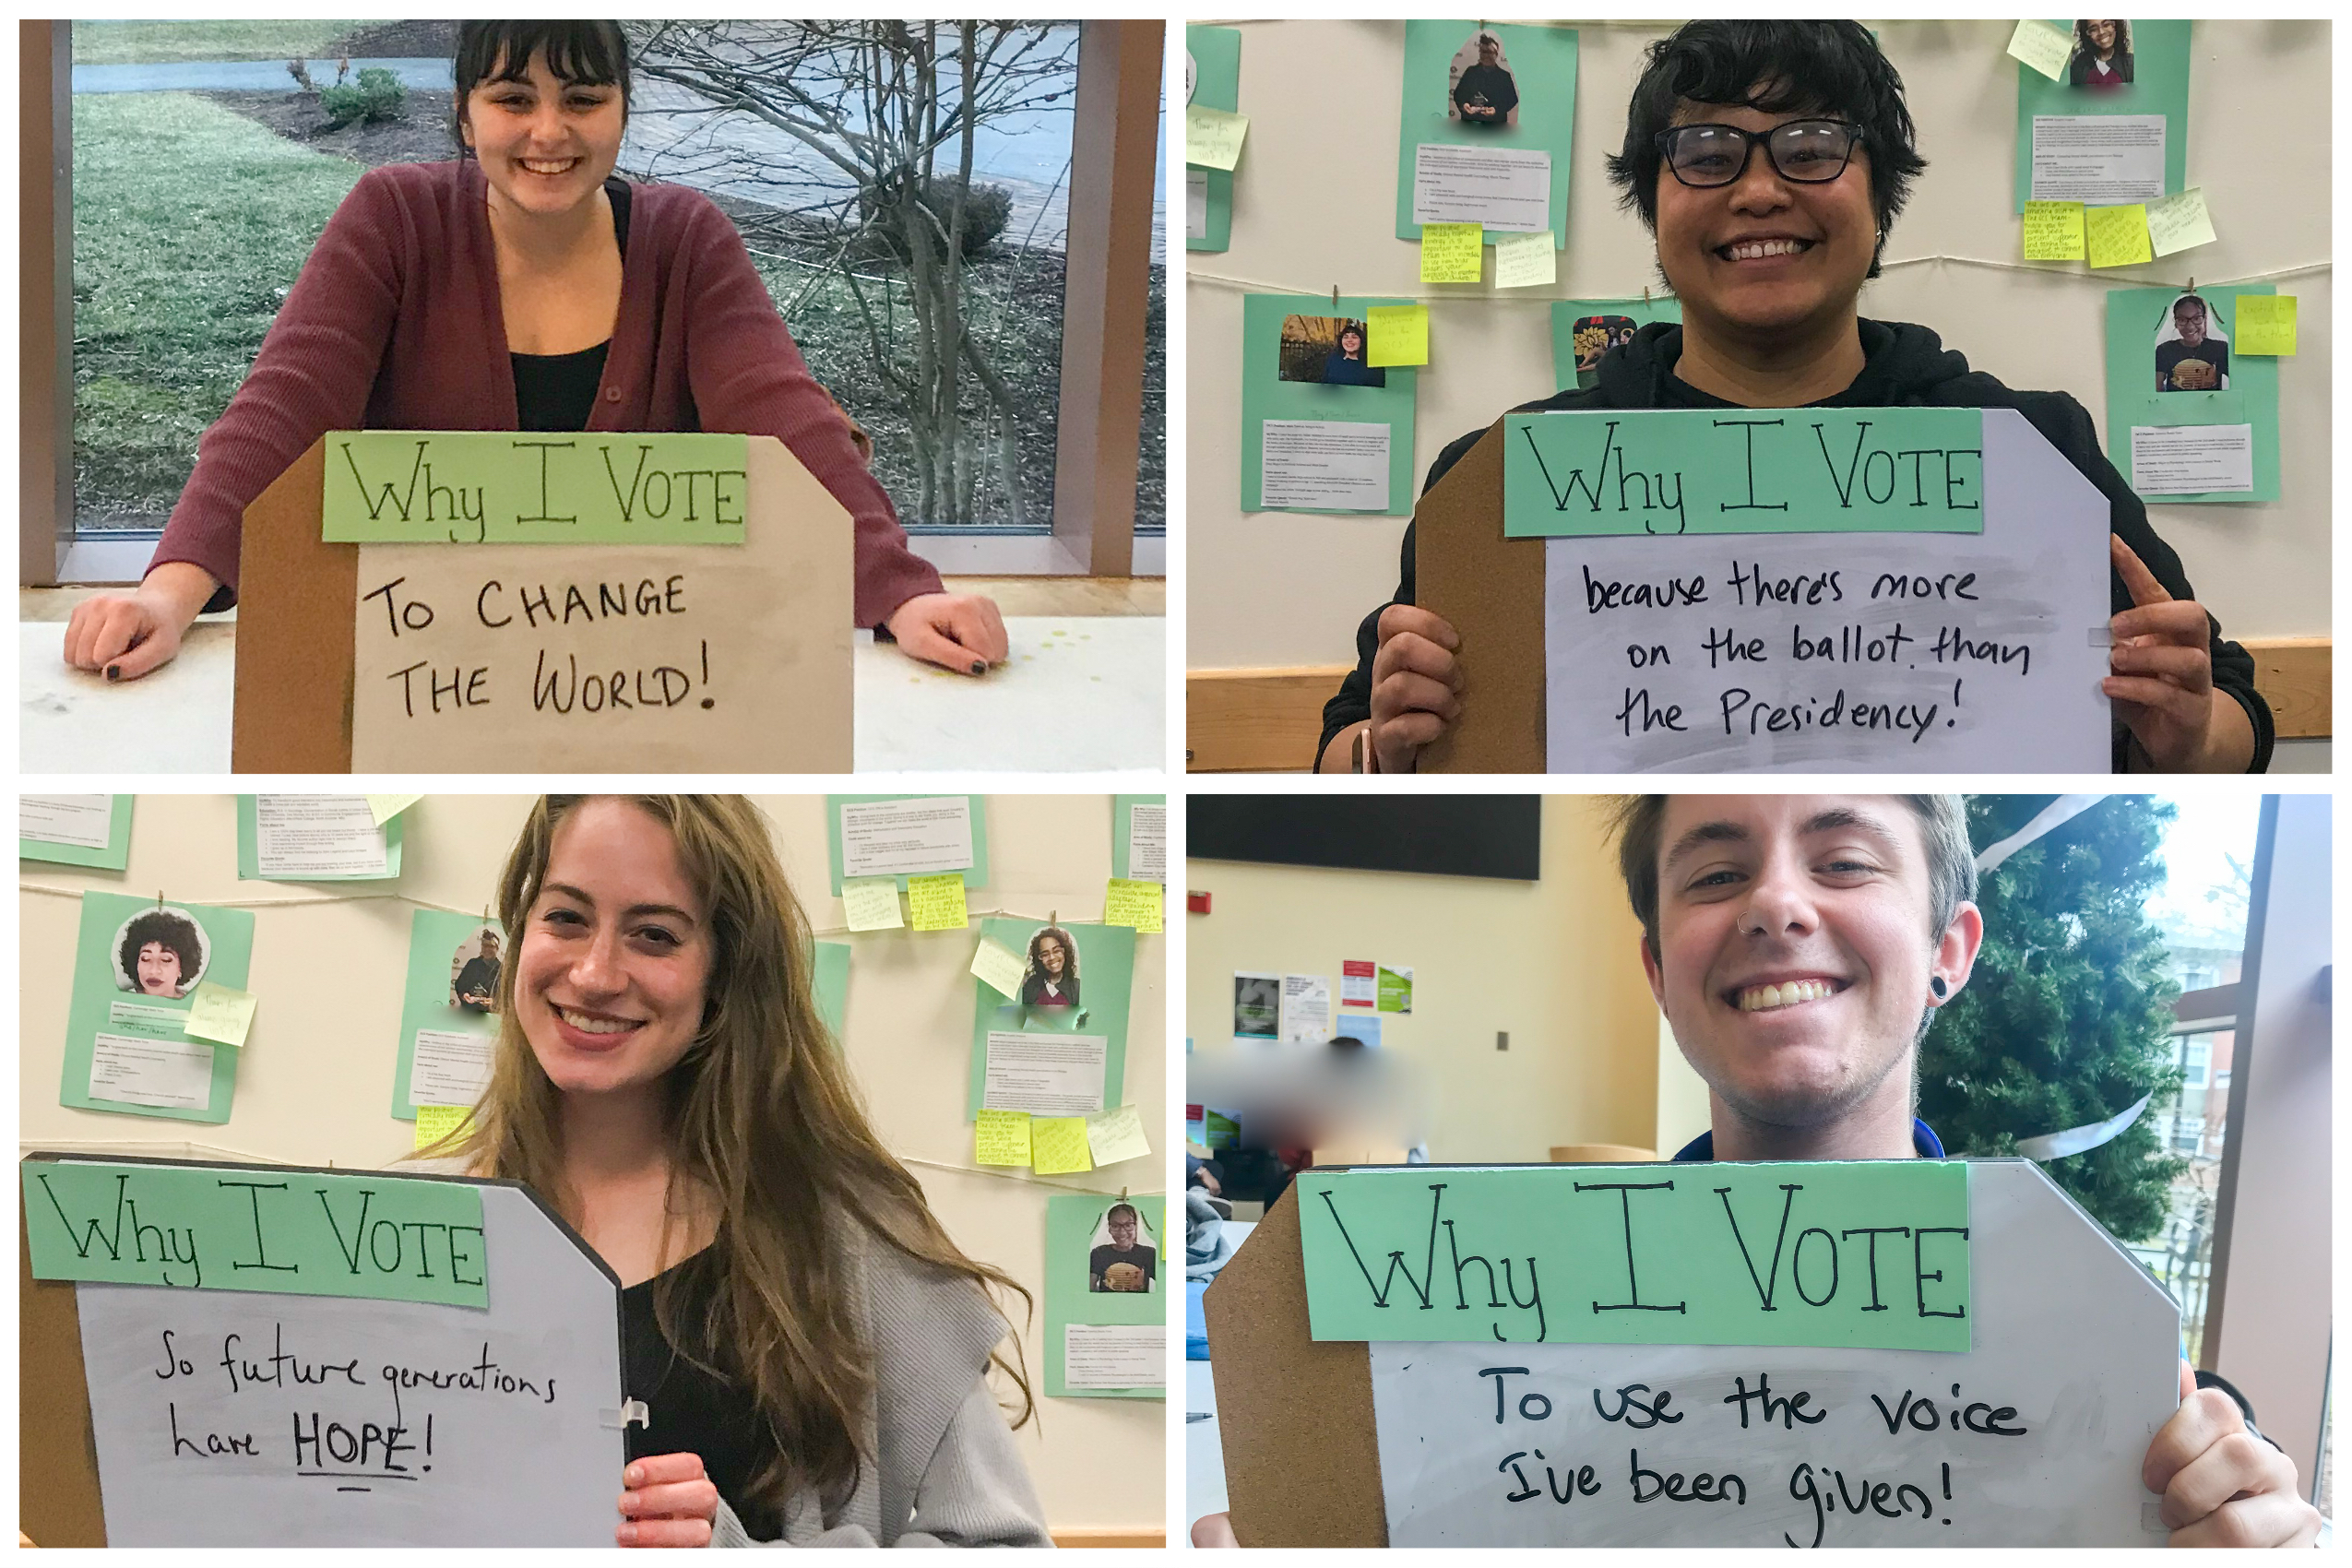 4 students hold why I vote signs saying to change the world, because there's more on the ballot than the presidency, so future generations have hope, to use the voice I'v been given